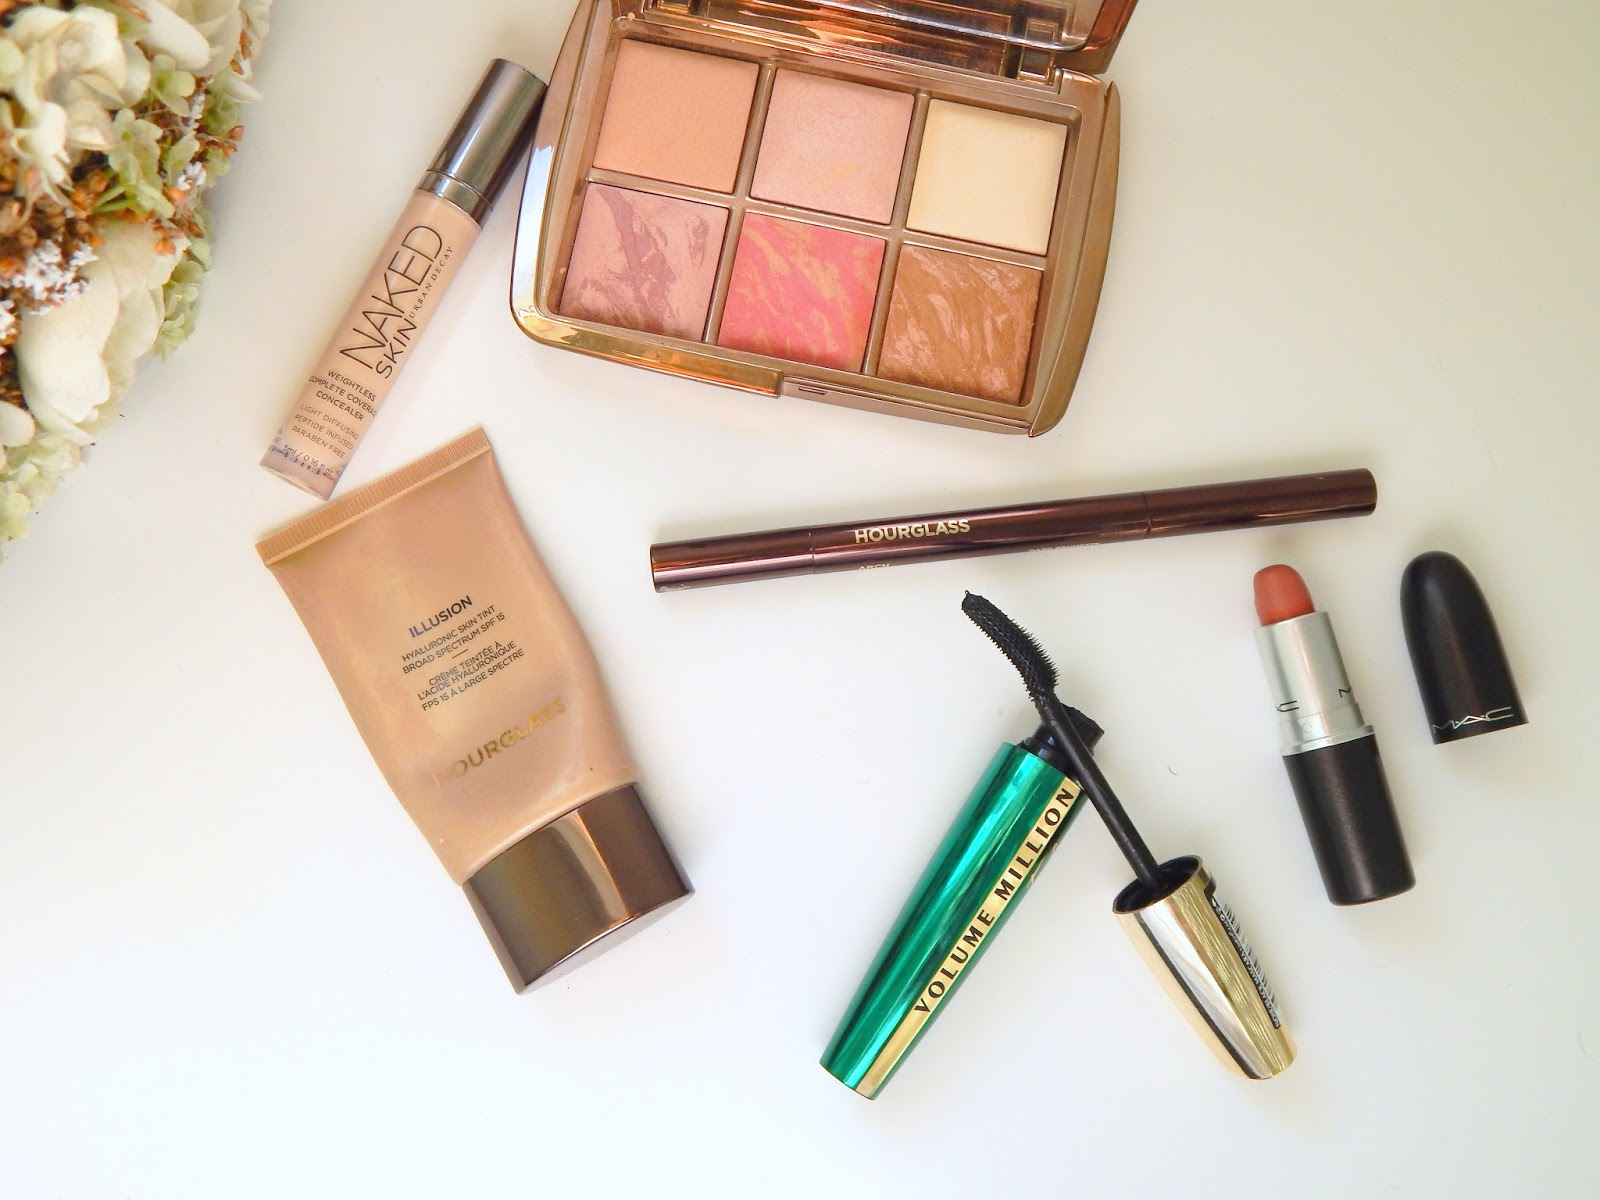 Products for a no makeup look ft Hourglass, Urban Decay, L'oreal and Mac